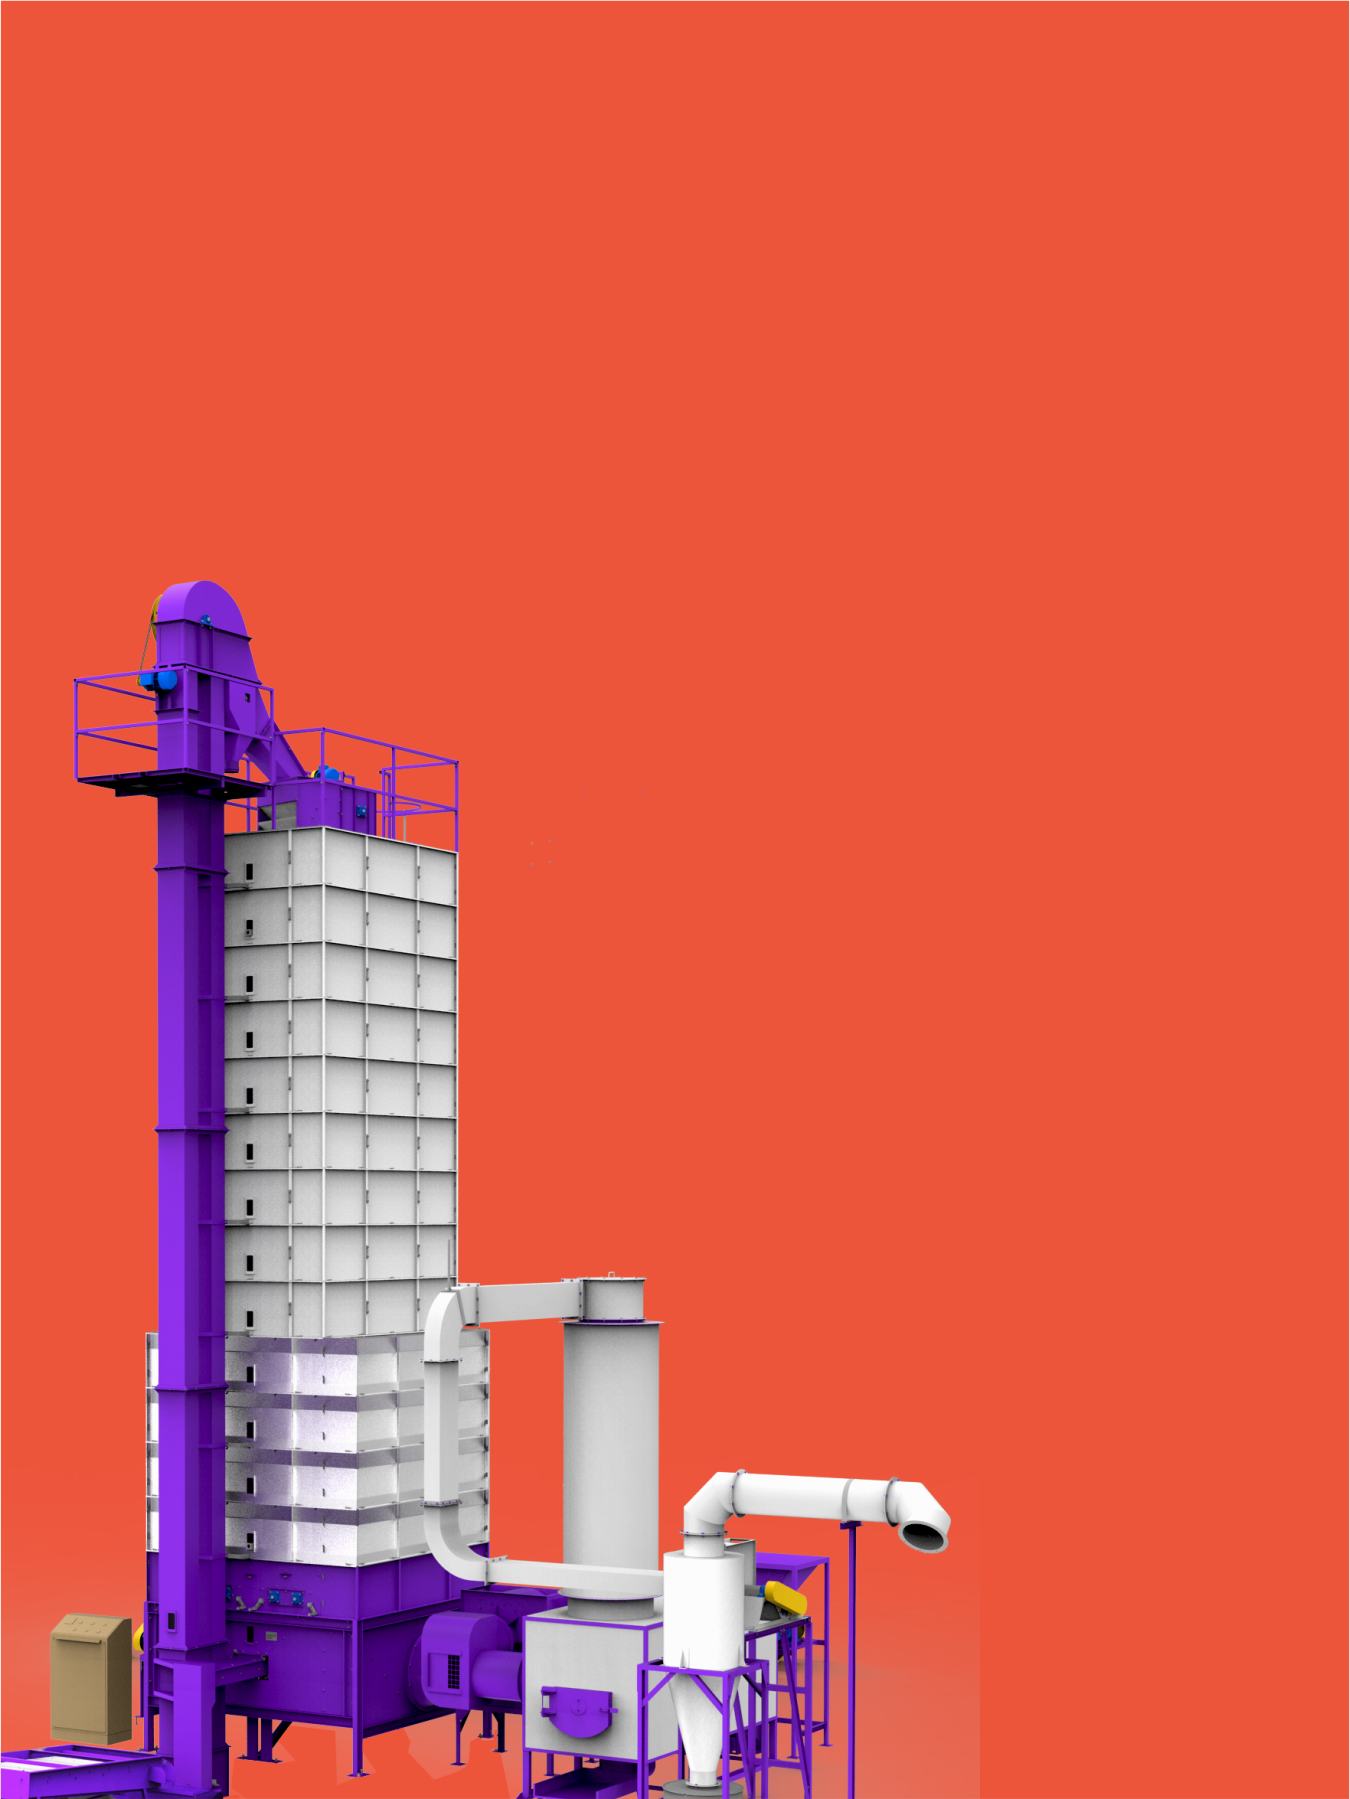 Vertical-Dryer-thumb-1.png